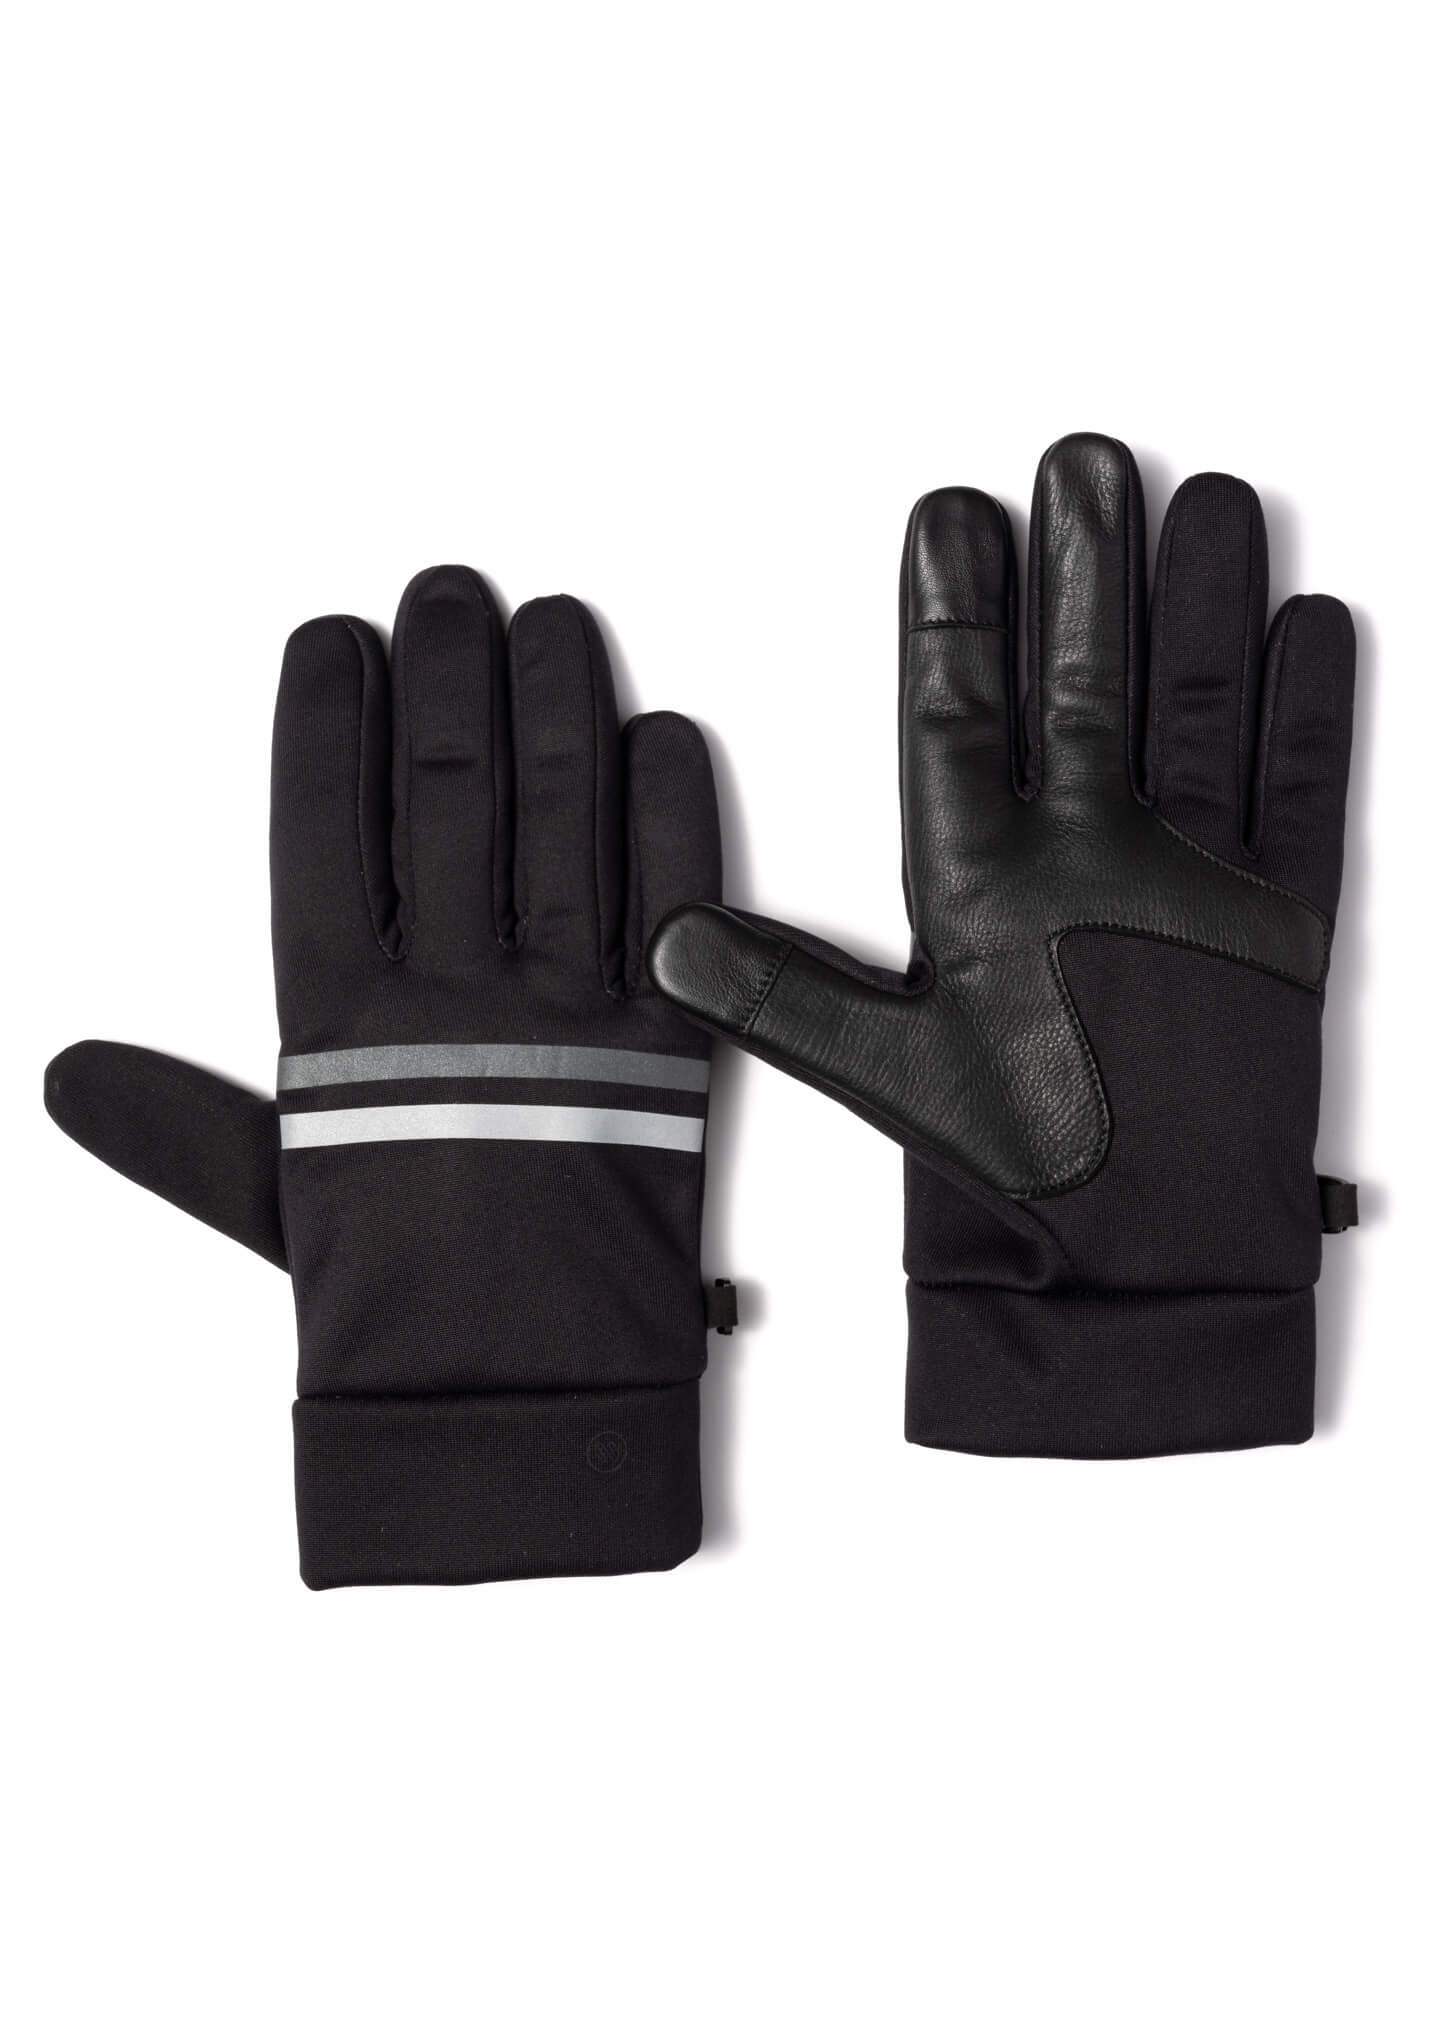 Greigor Reflective Stripe E-touch Glove